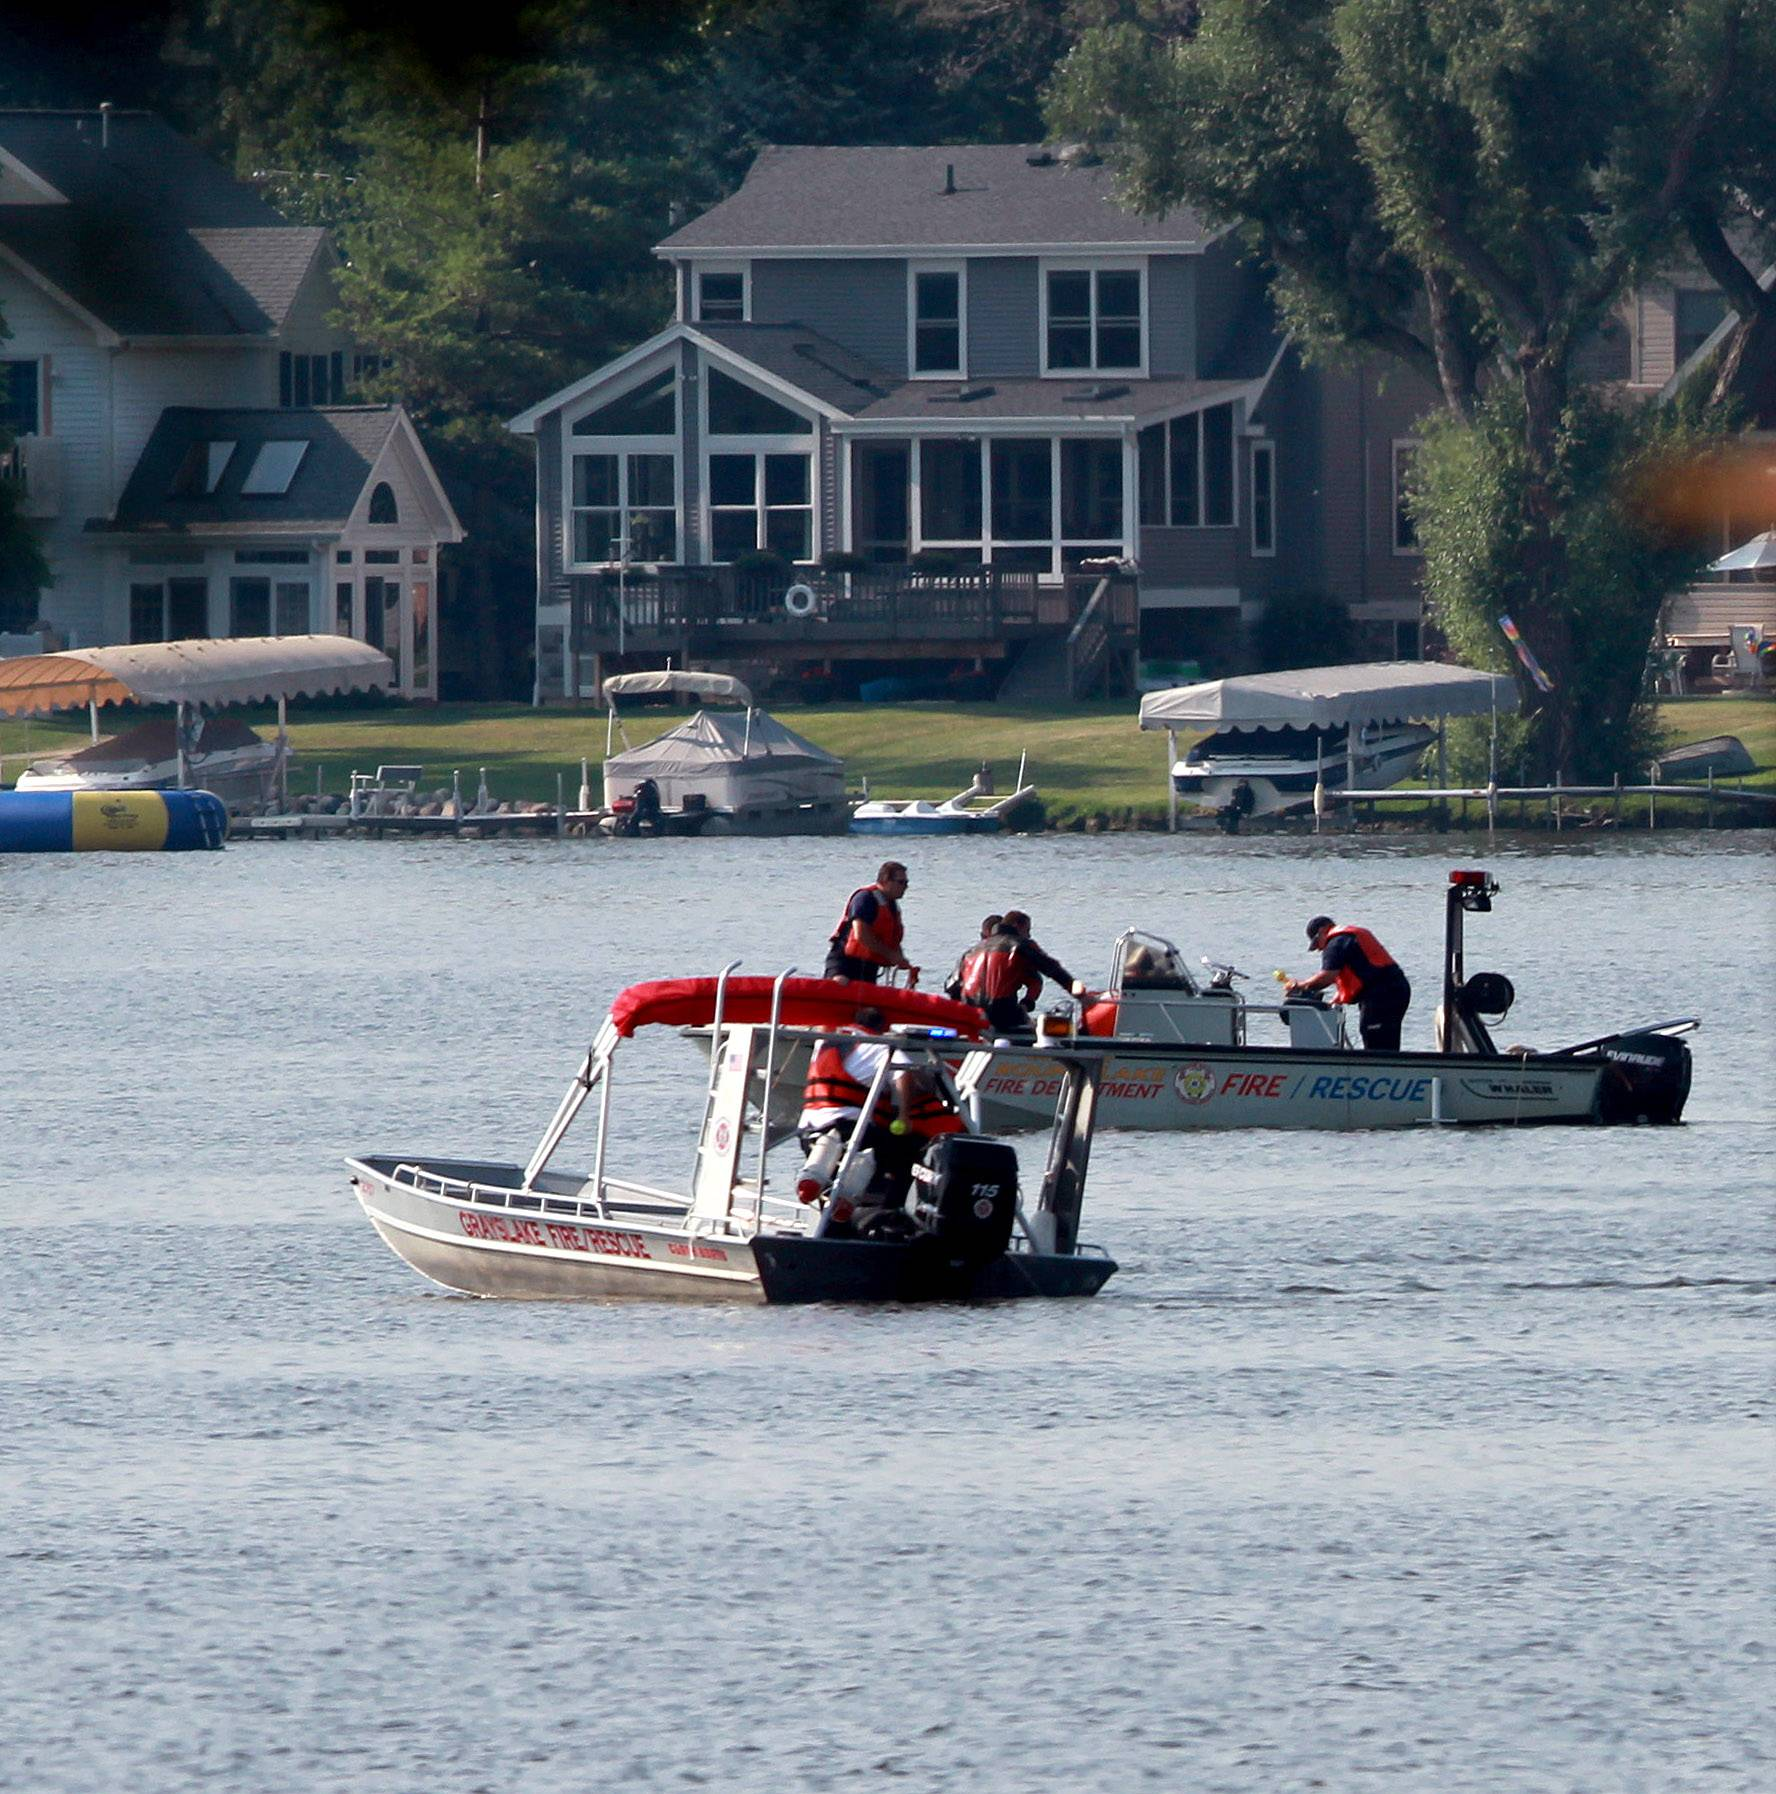 Divers discovered the body of Matt Reed, a junior at Grayslake Central High School, in the water of Third Lake Monday night.